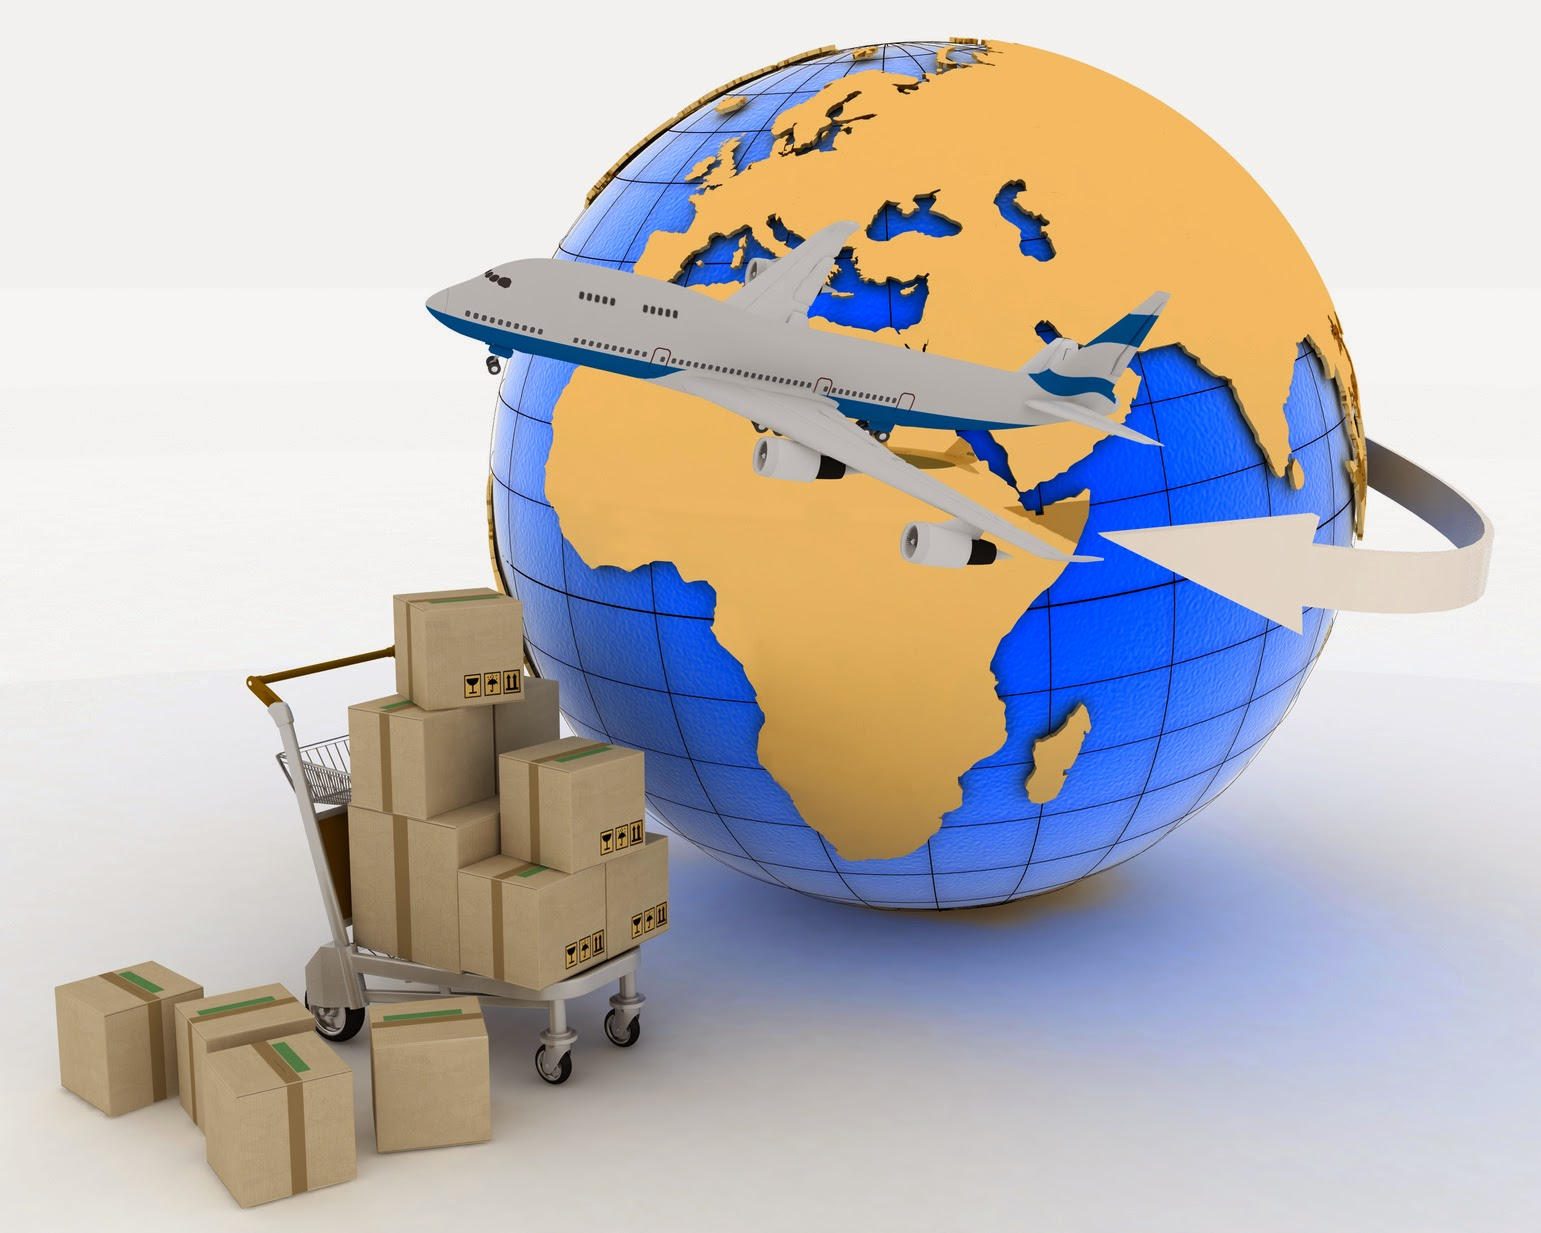 Earth, plane and boxes for export